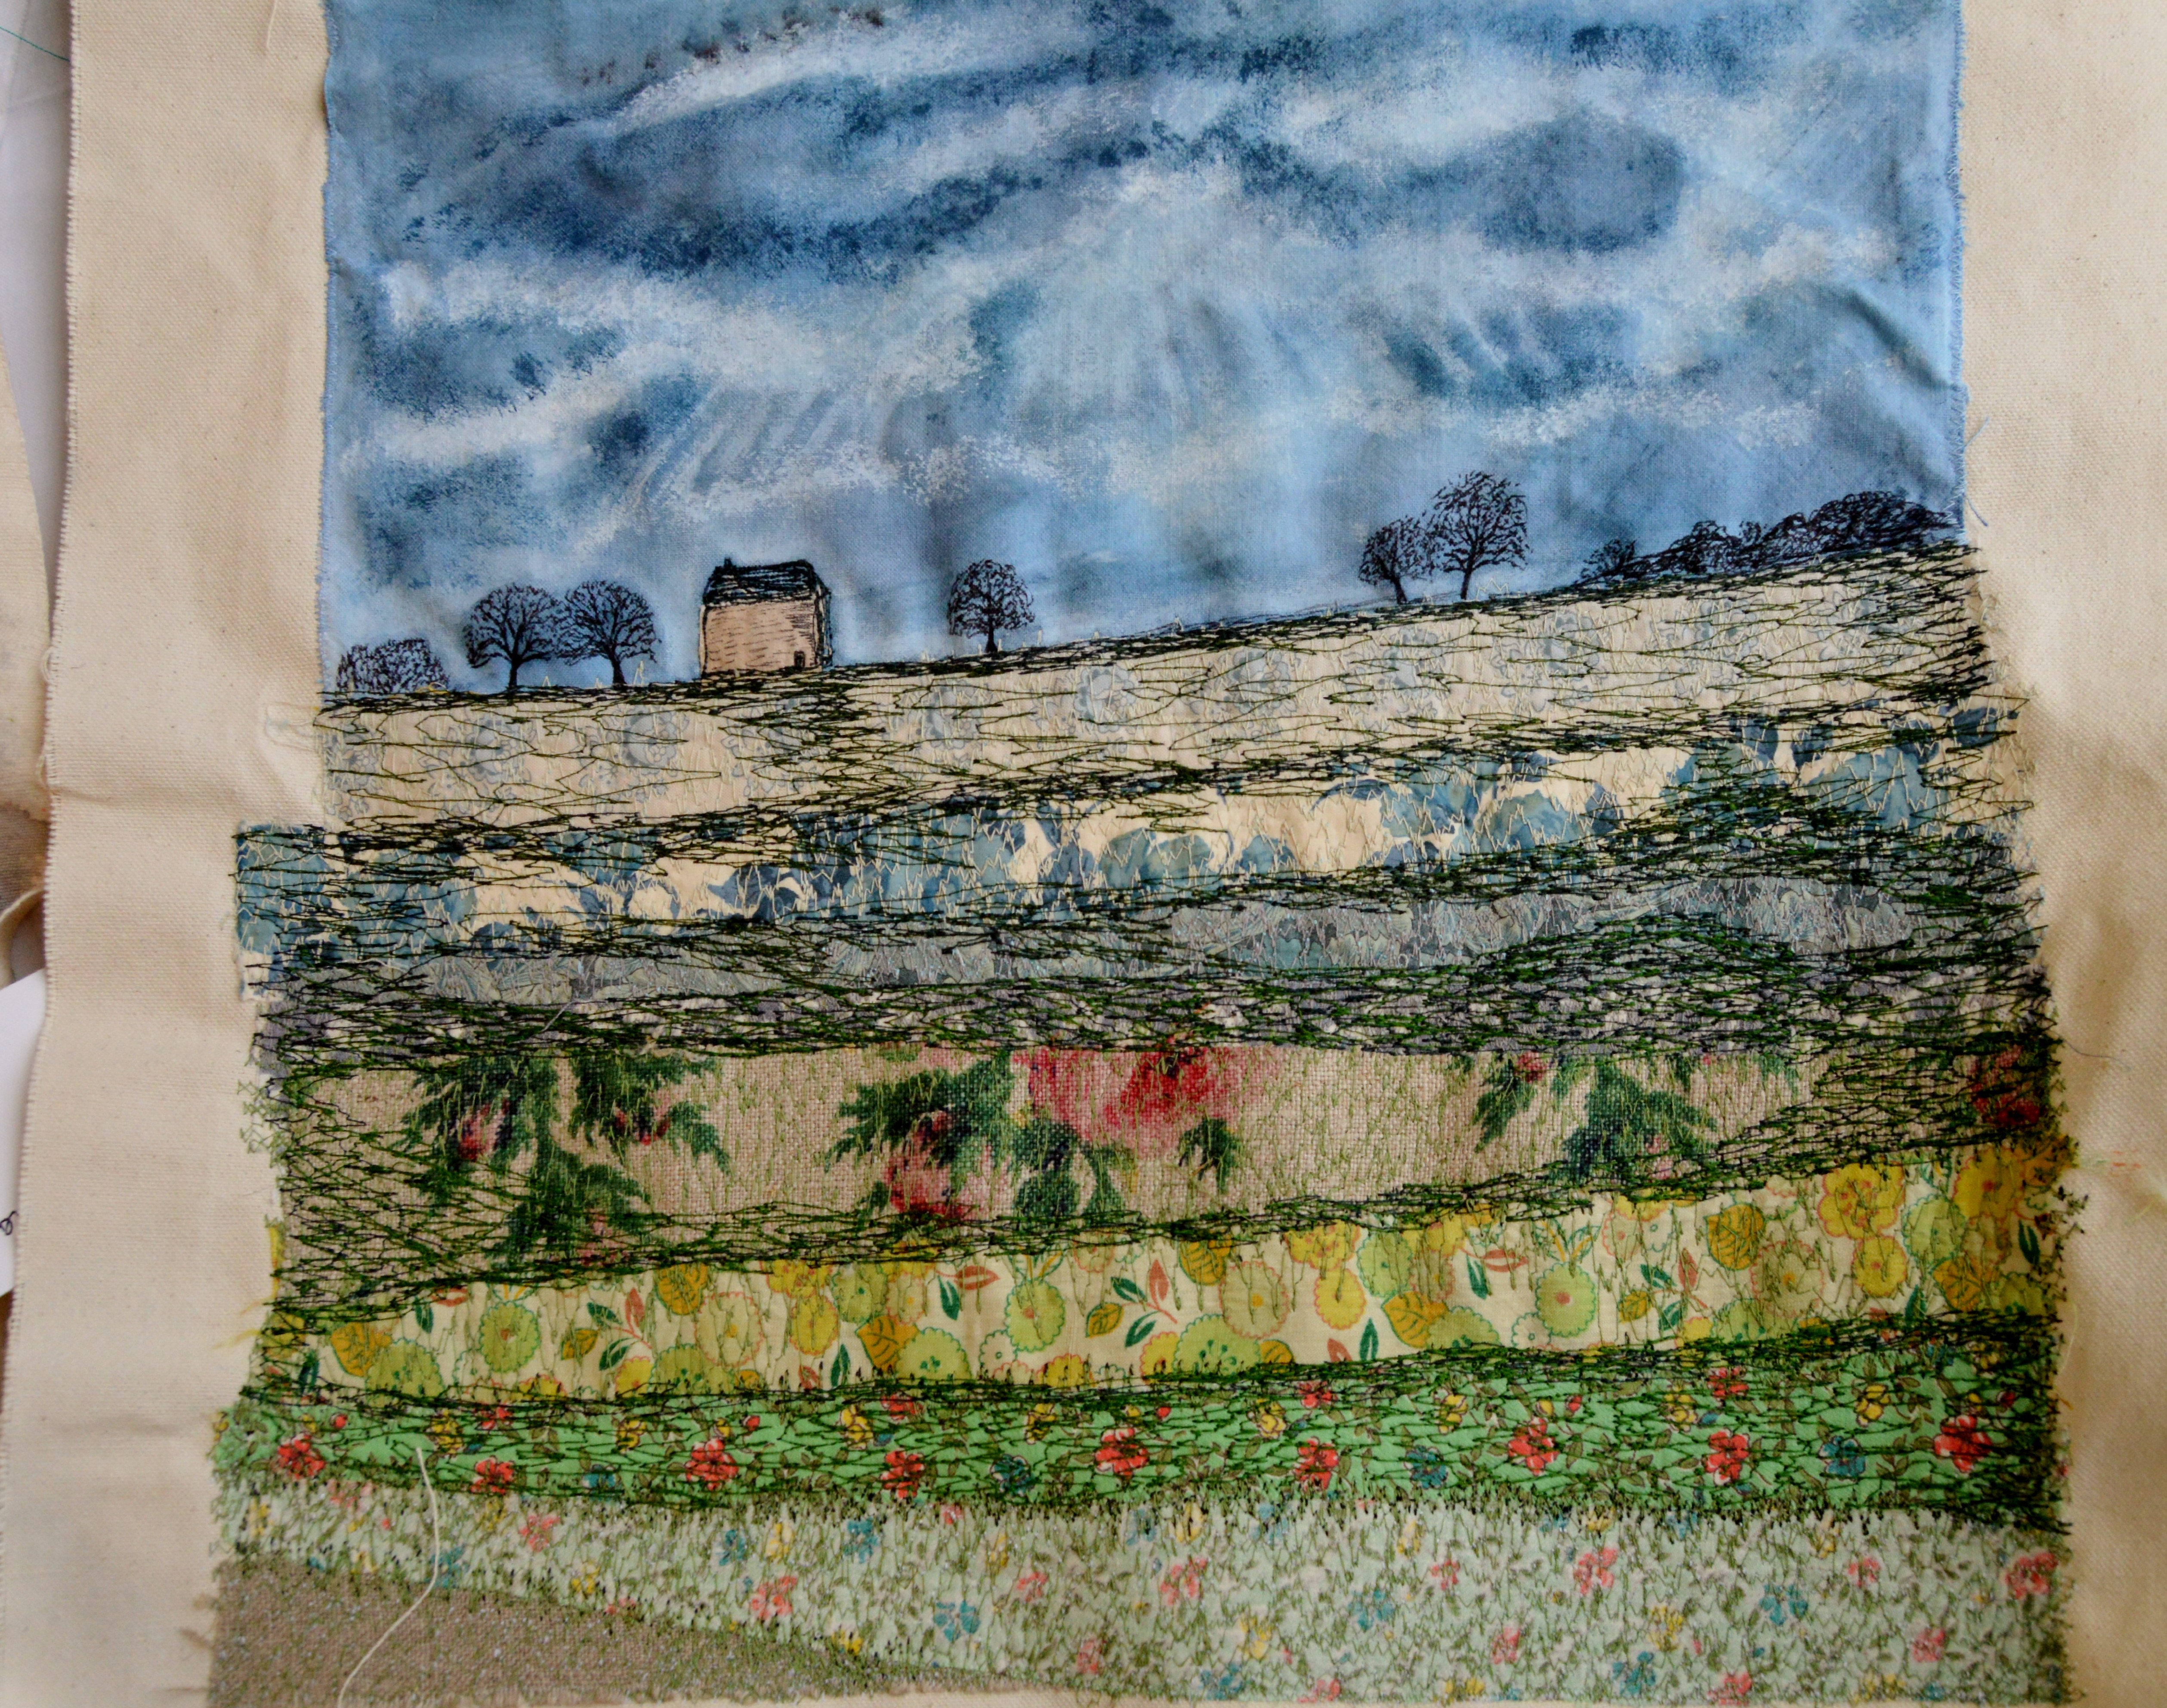 applique and machine embroidery by Deborah  McLennon-Riches